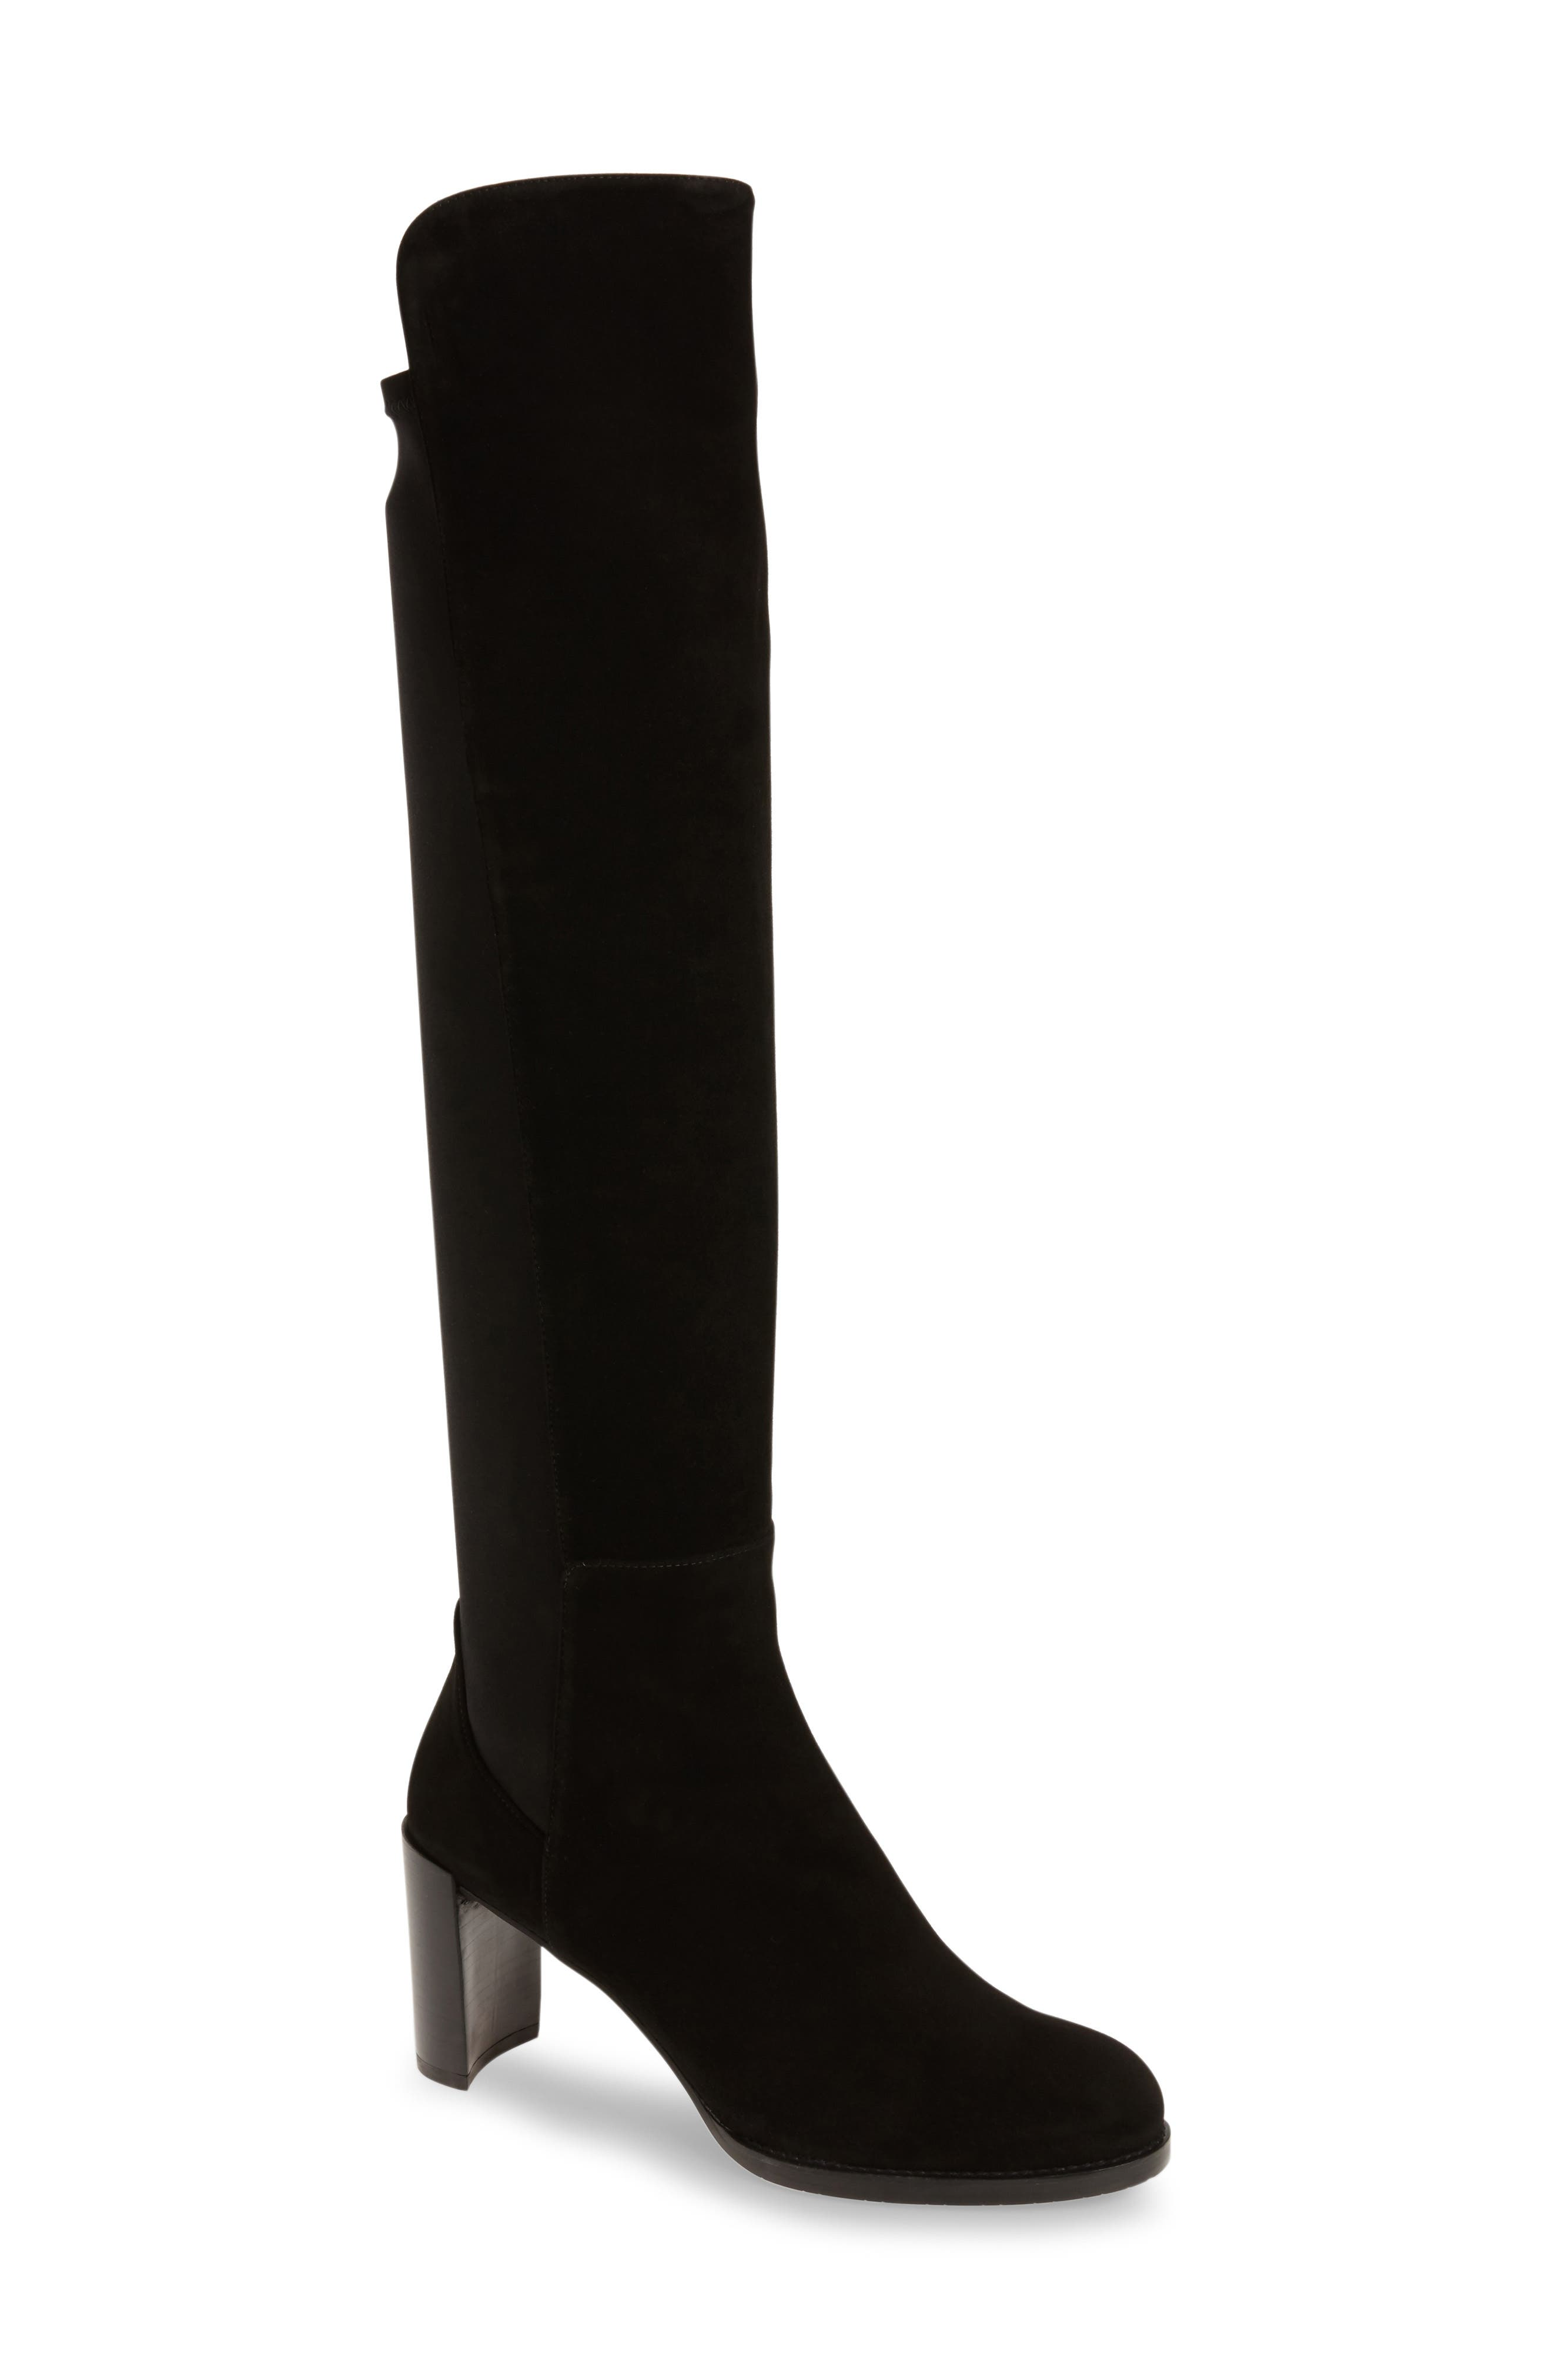 Alternate Image 1 Selected - Stuart Weitzman 'Soho' Tall Elastic Back Boot (Women) (Nordstrom Exclusive)